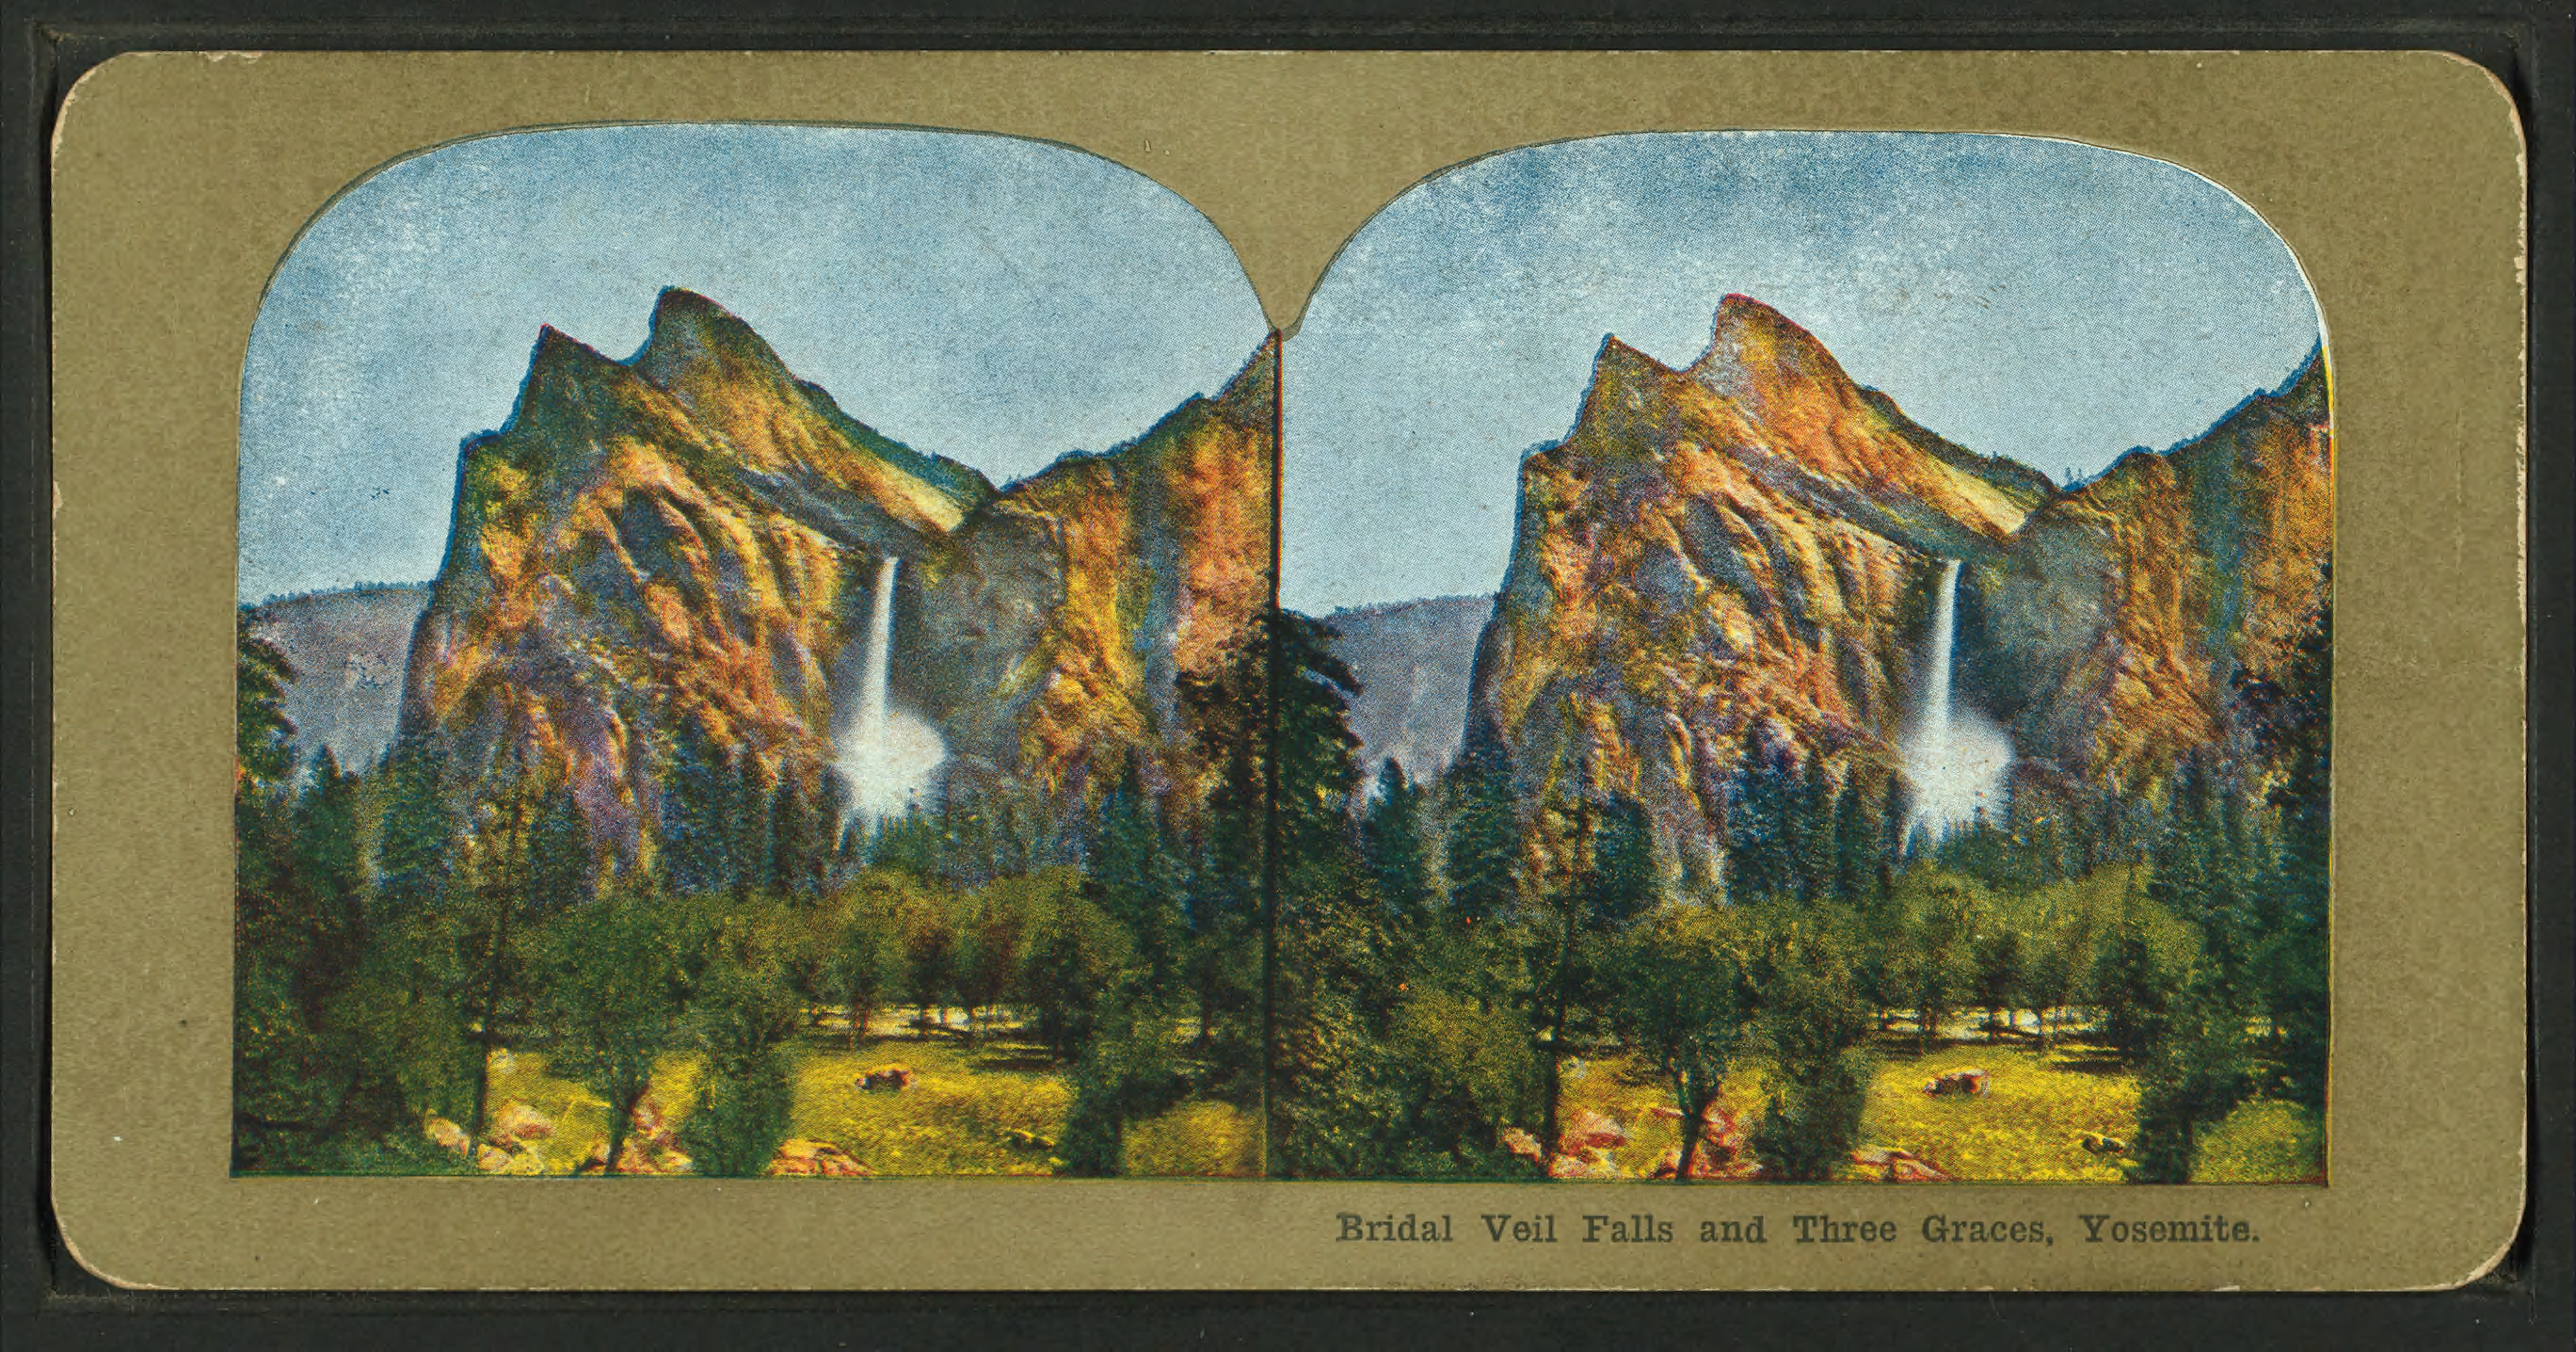 File:Bridal Veil Falls and THree Graces, Yosemite, from Robert N.